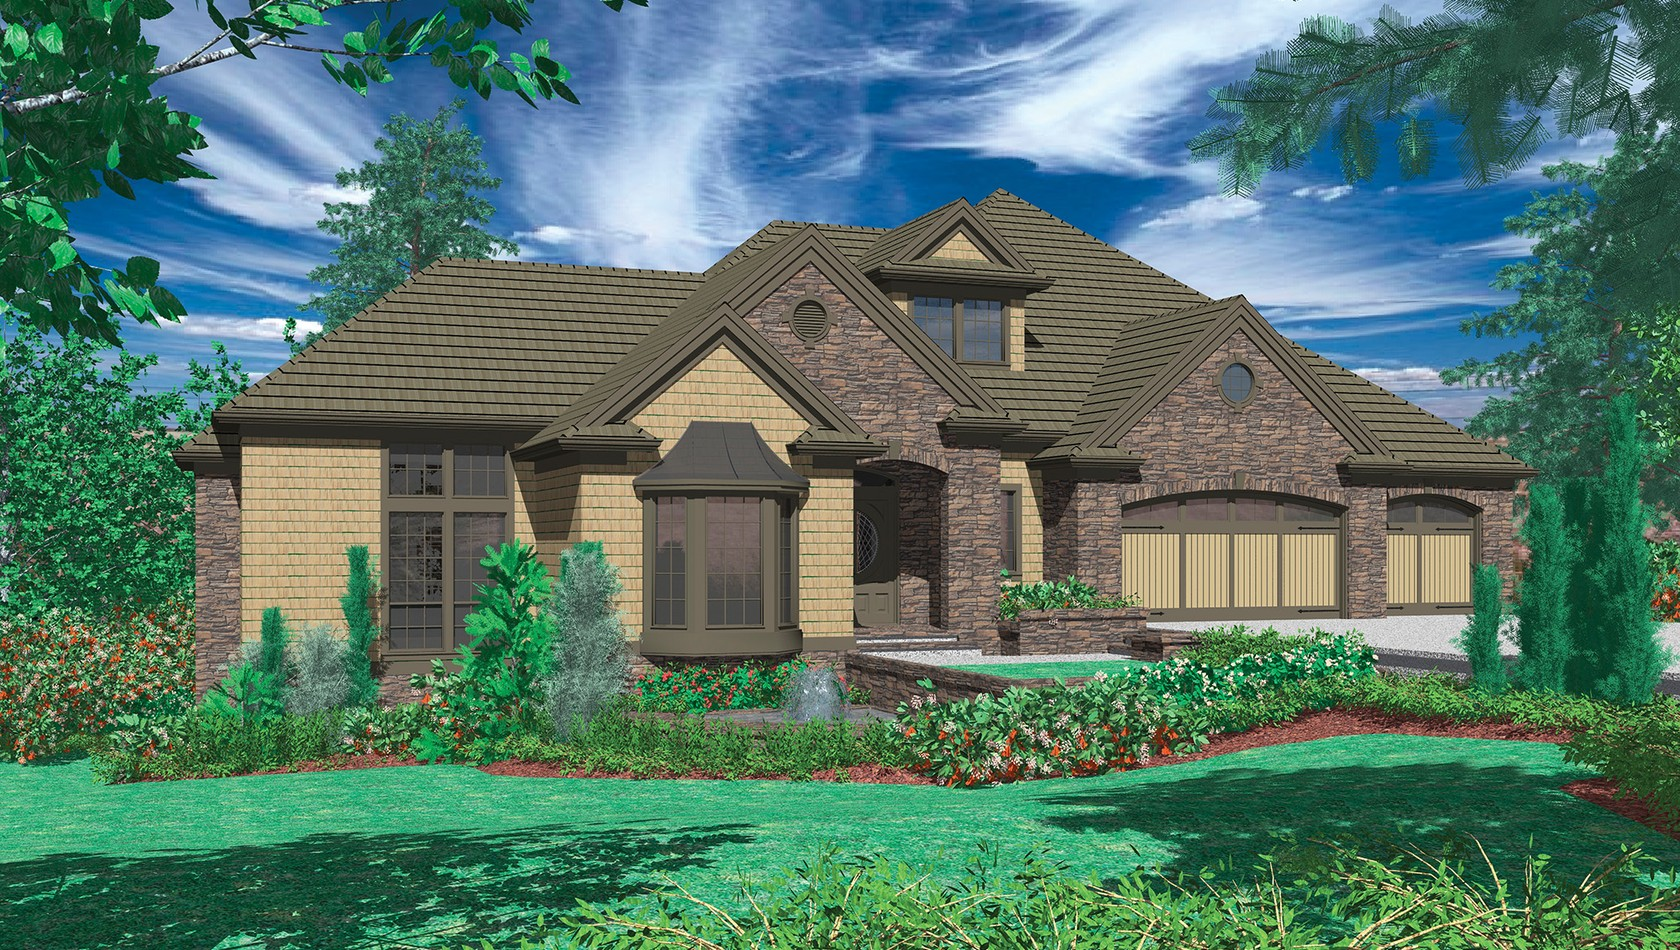 Main image for house plan 1404: The Avellana